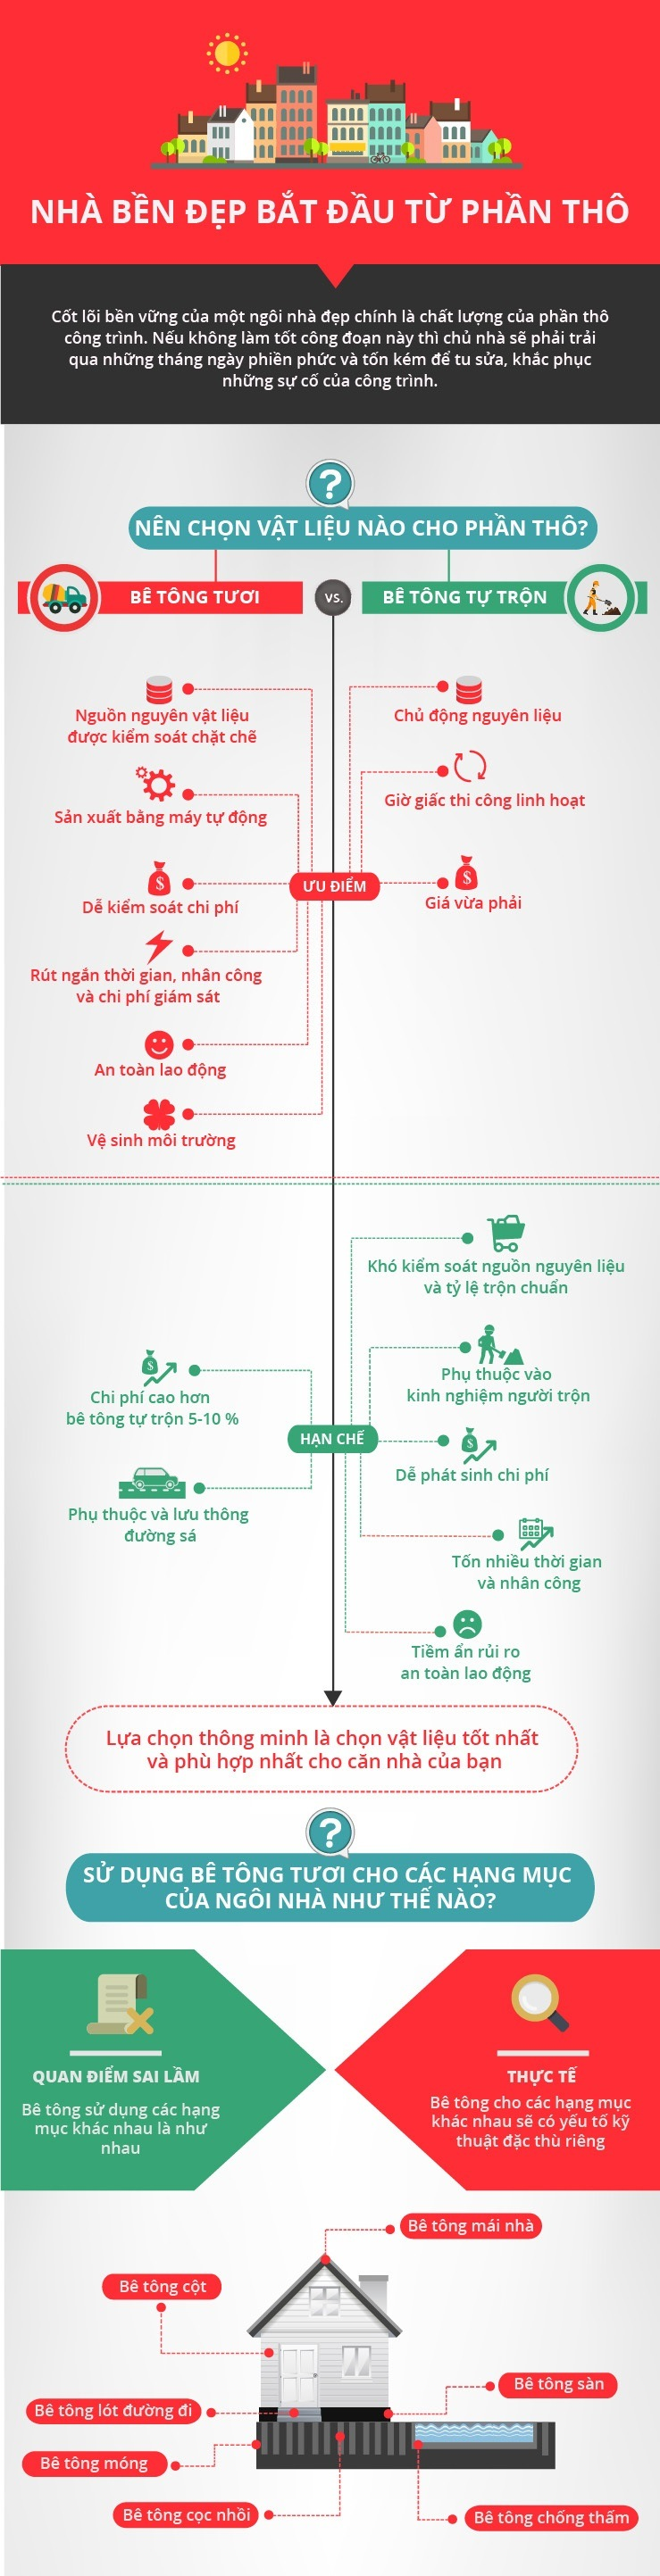 infographic_holcim_xaynhachatluong_1